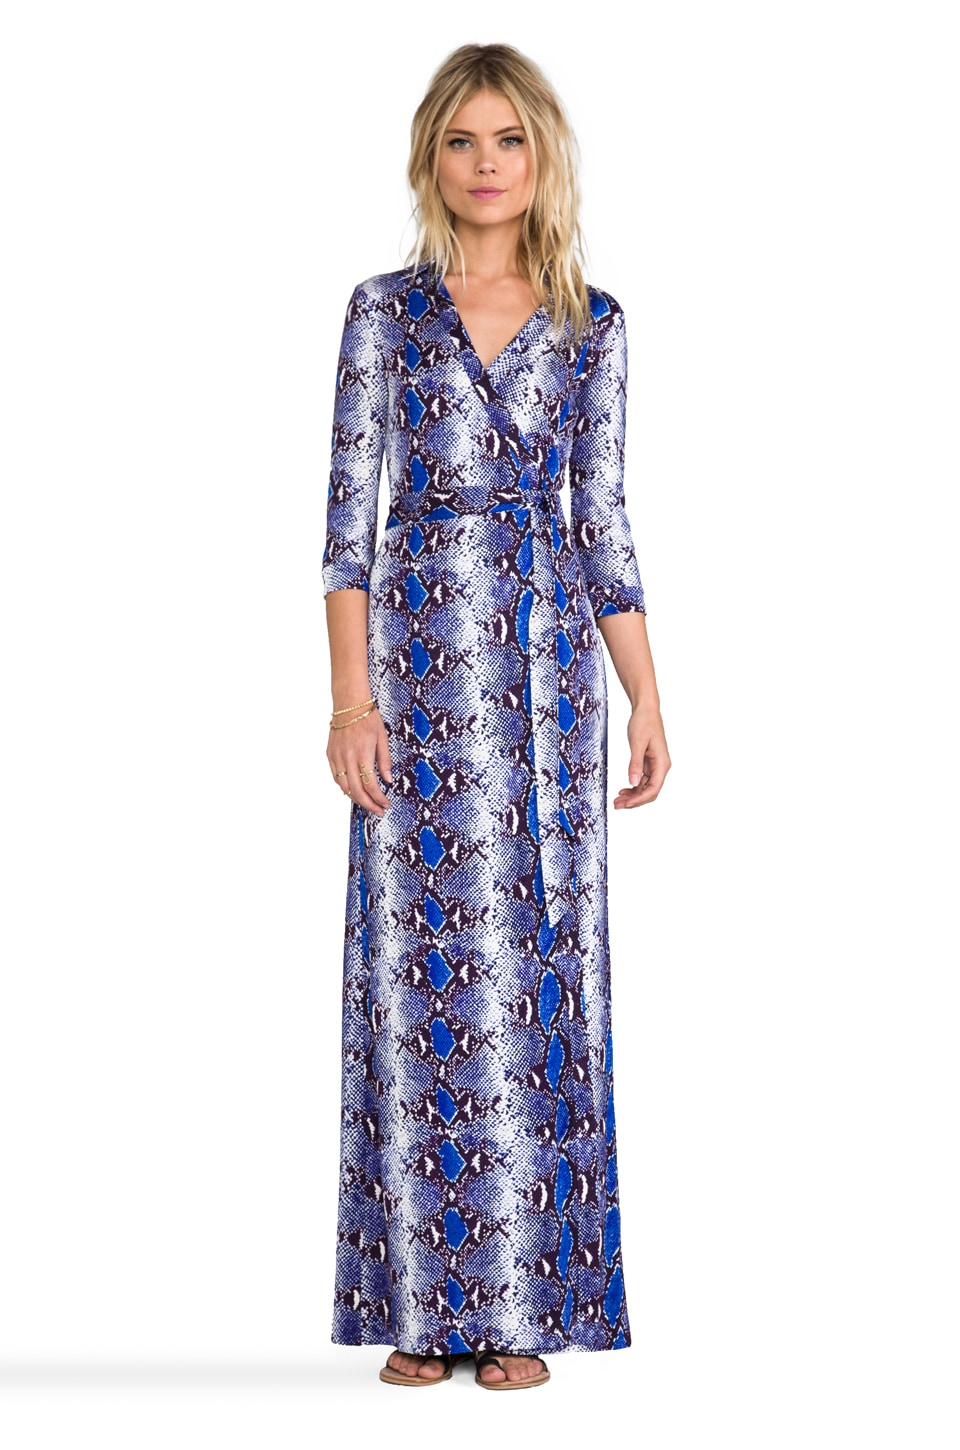 Diane von Furstenberg Abigail Dress in Python Medium Blue